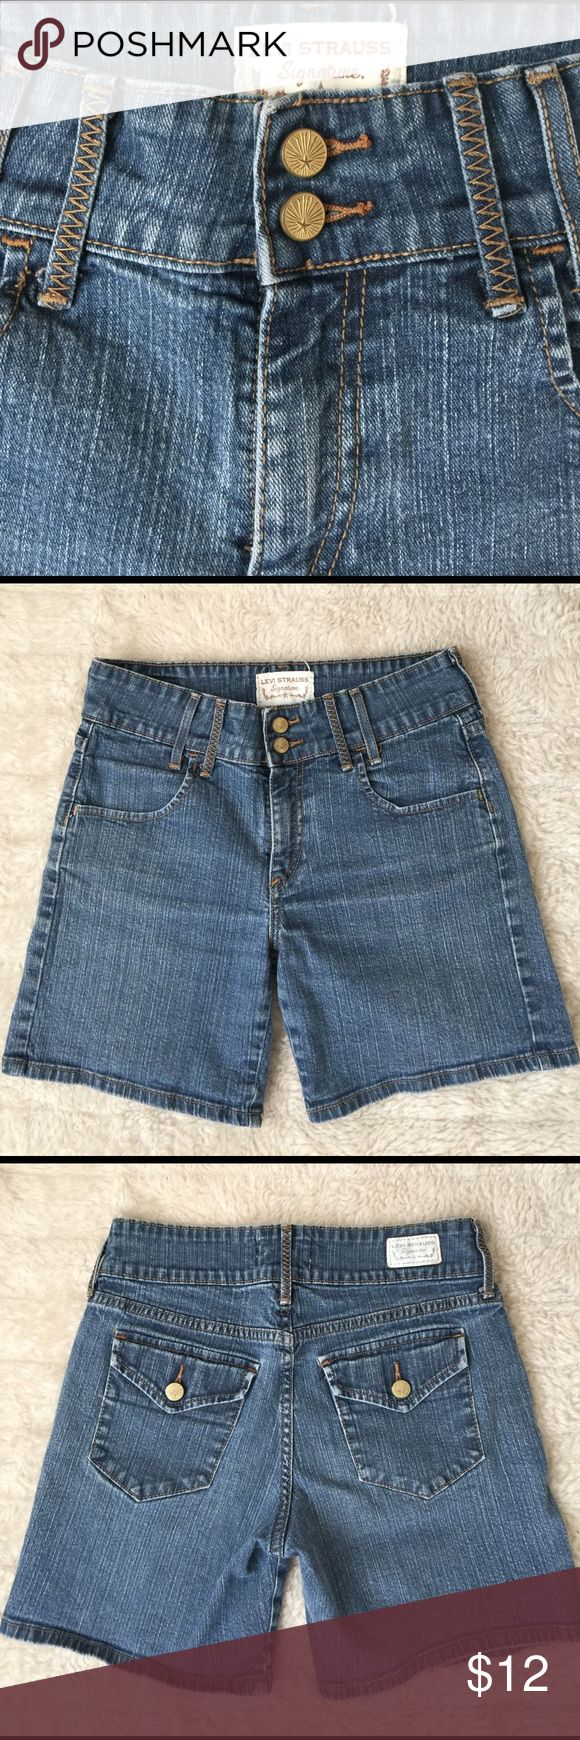 {Levi Strauss} Women's Signature Shorts Size 4 Reg Two button belted waist with zip and button closure. Material Content: 53%Ramie, 46%Cotton, 1%Spandex. #levishorts, #leviswomensshorts, #denimshorts, #womensdenimshorts Levi's Shorts Jean Shorts